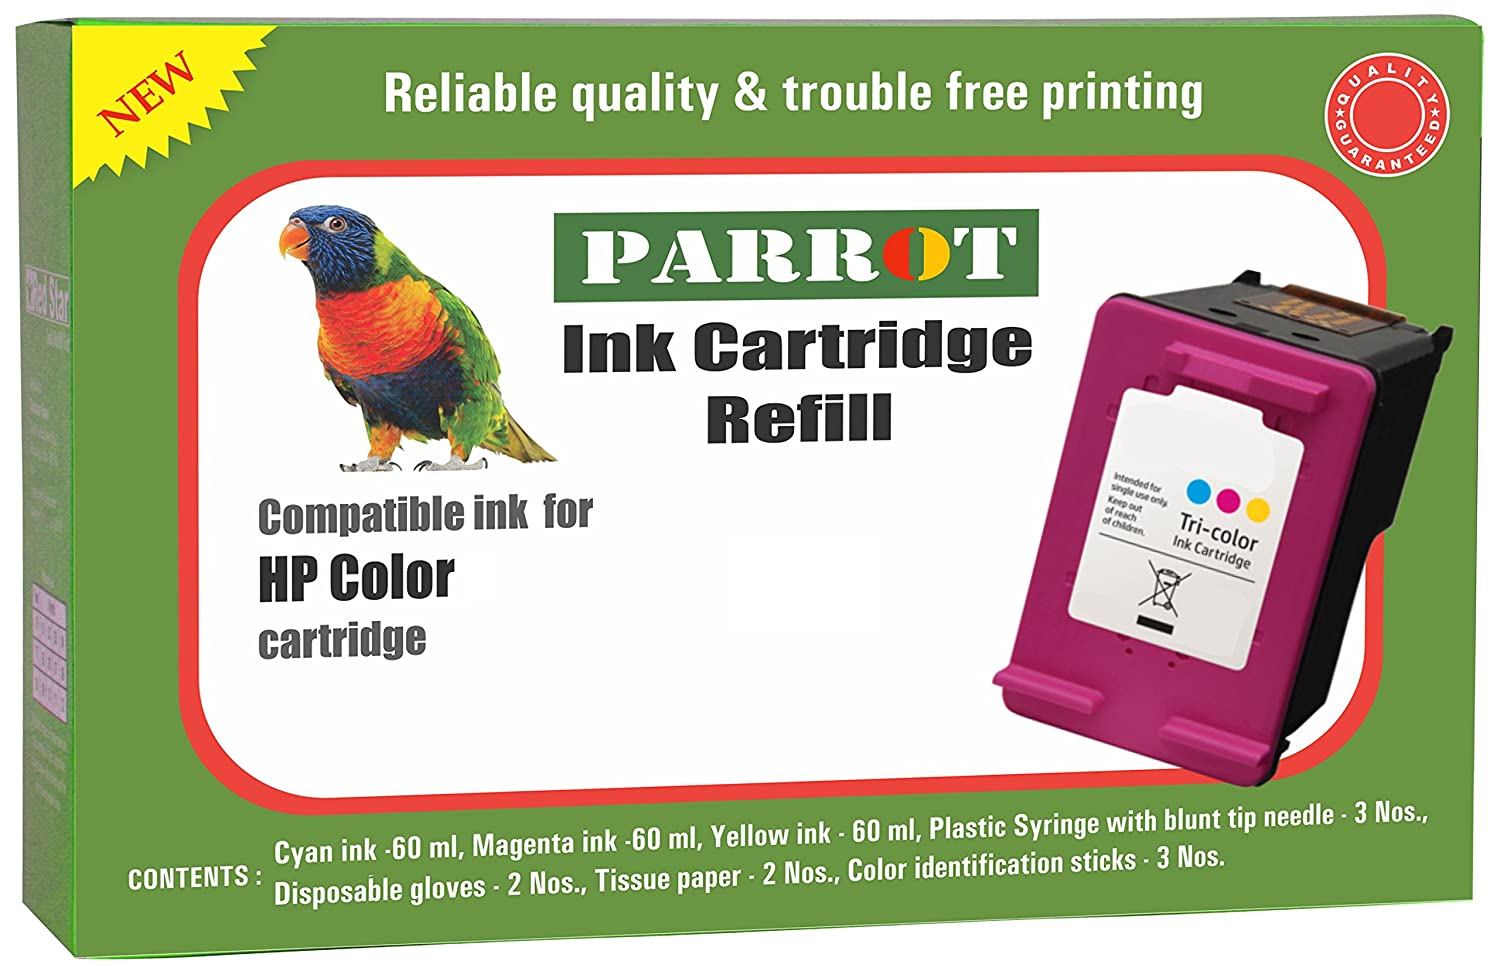 Parrot Ink Refill kit for HP Color Ink Cartridge: Amazon in: Electronics